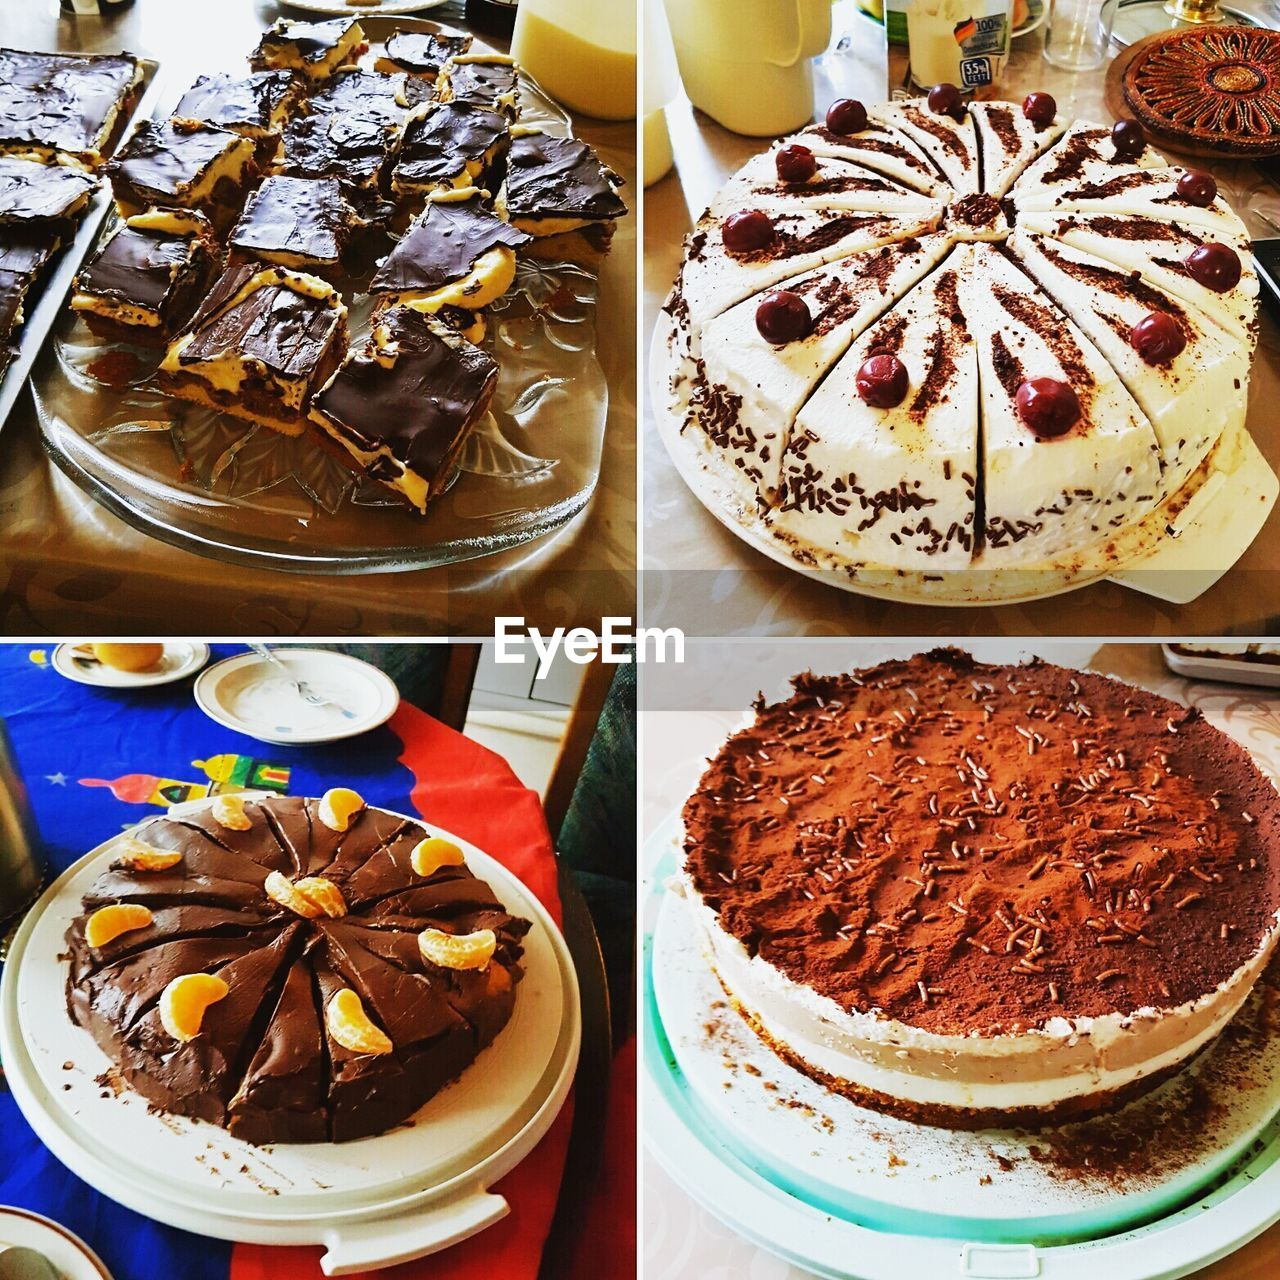 food and drink, indulgence, food, variation, collage, freshness, choice, table, sweet food, dessert, ready-to-eat, indoors, no people, temptation, plate, close-up, star anise, day